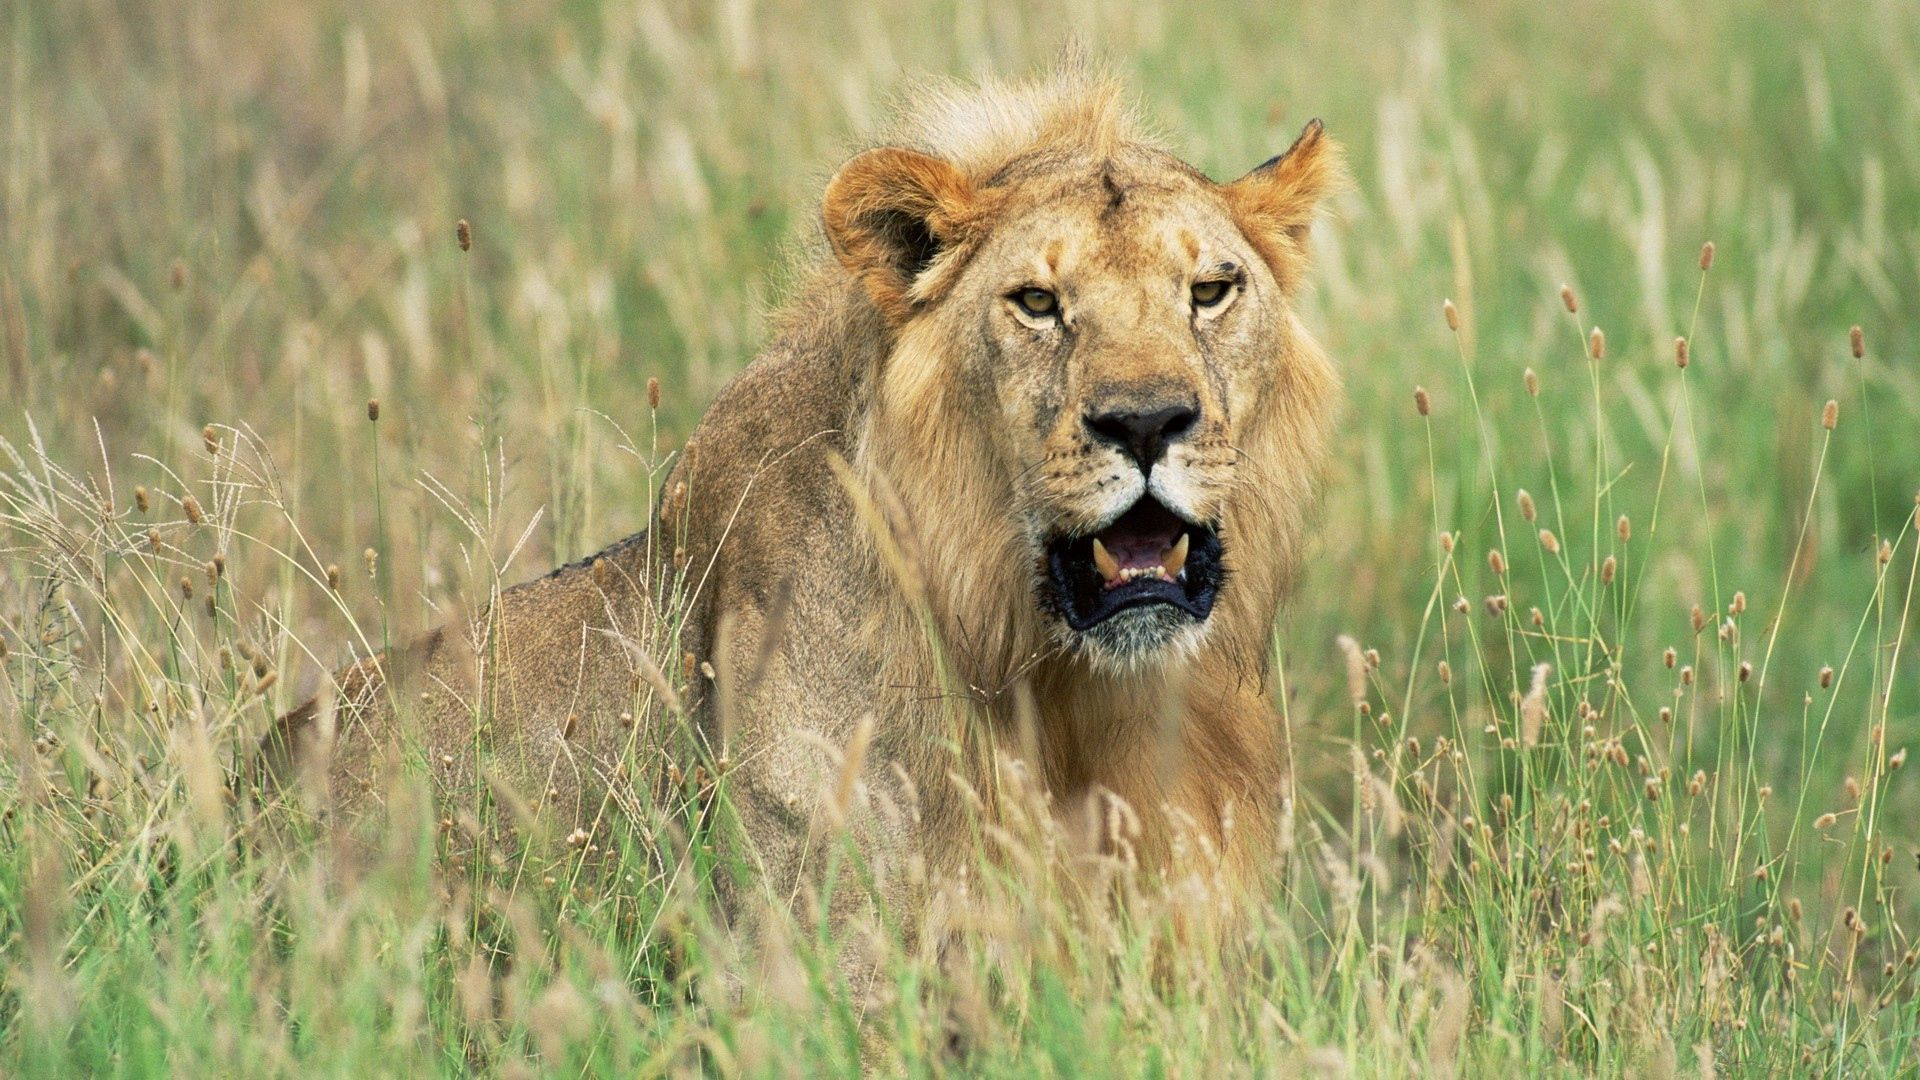 95043 download wallpaper Animals, Lion, Grass, Hunting, Hunt, Lurk, Hide screensavers and pictures for free